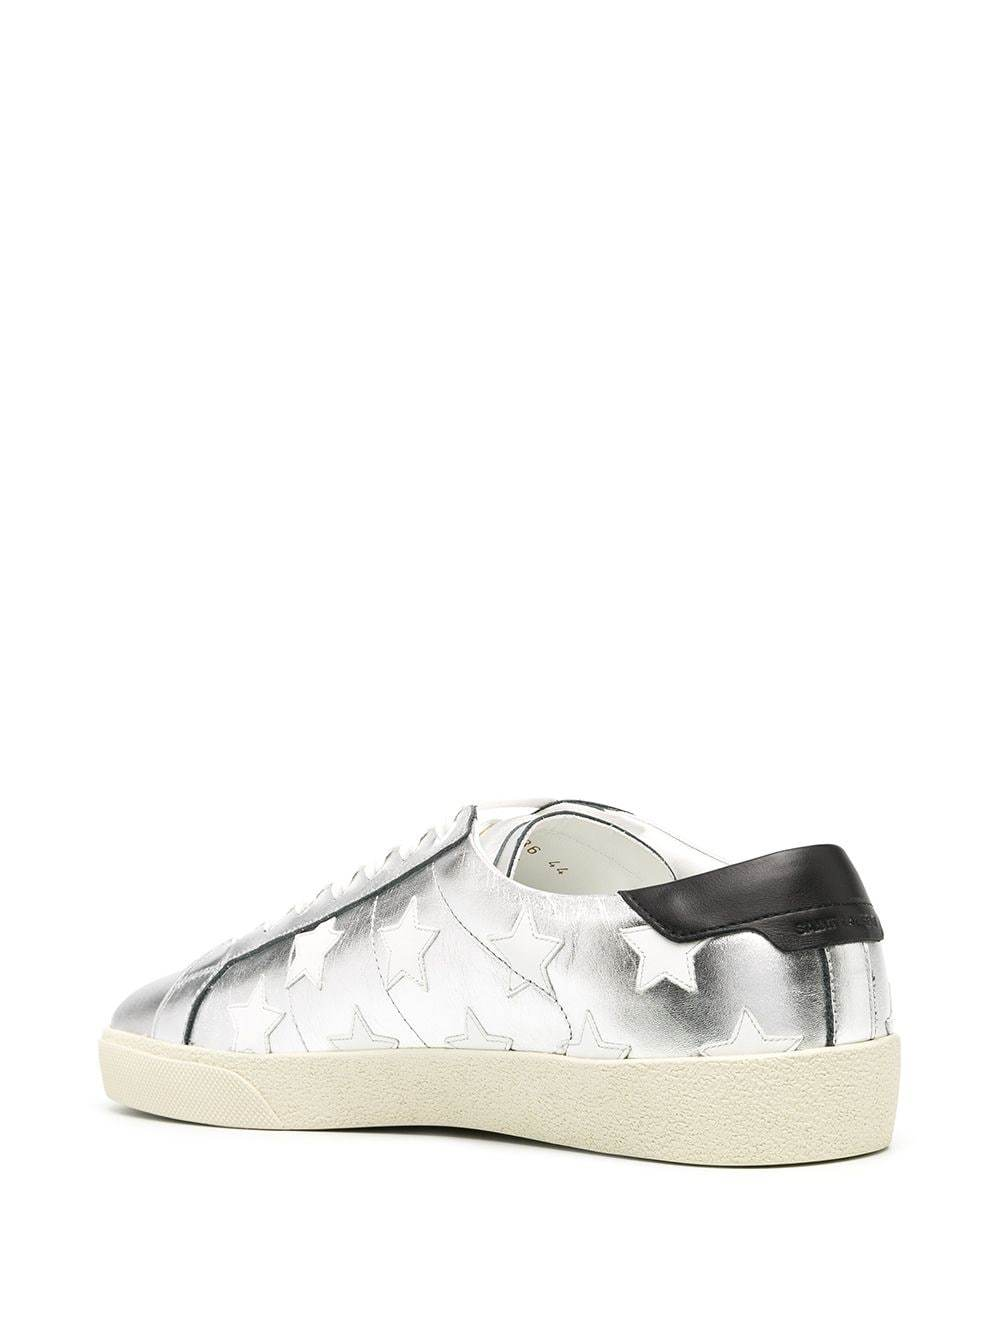 Silver Court Classic Star California Sneakers